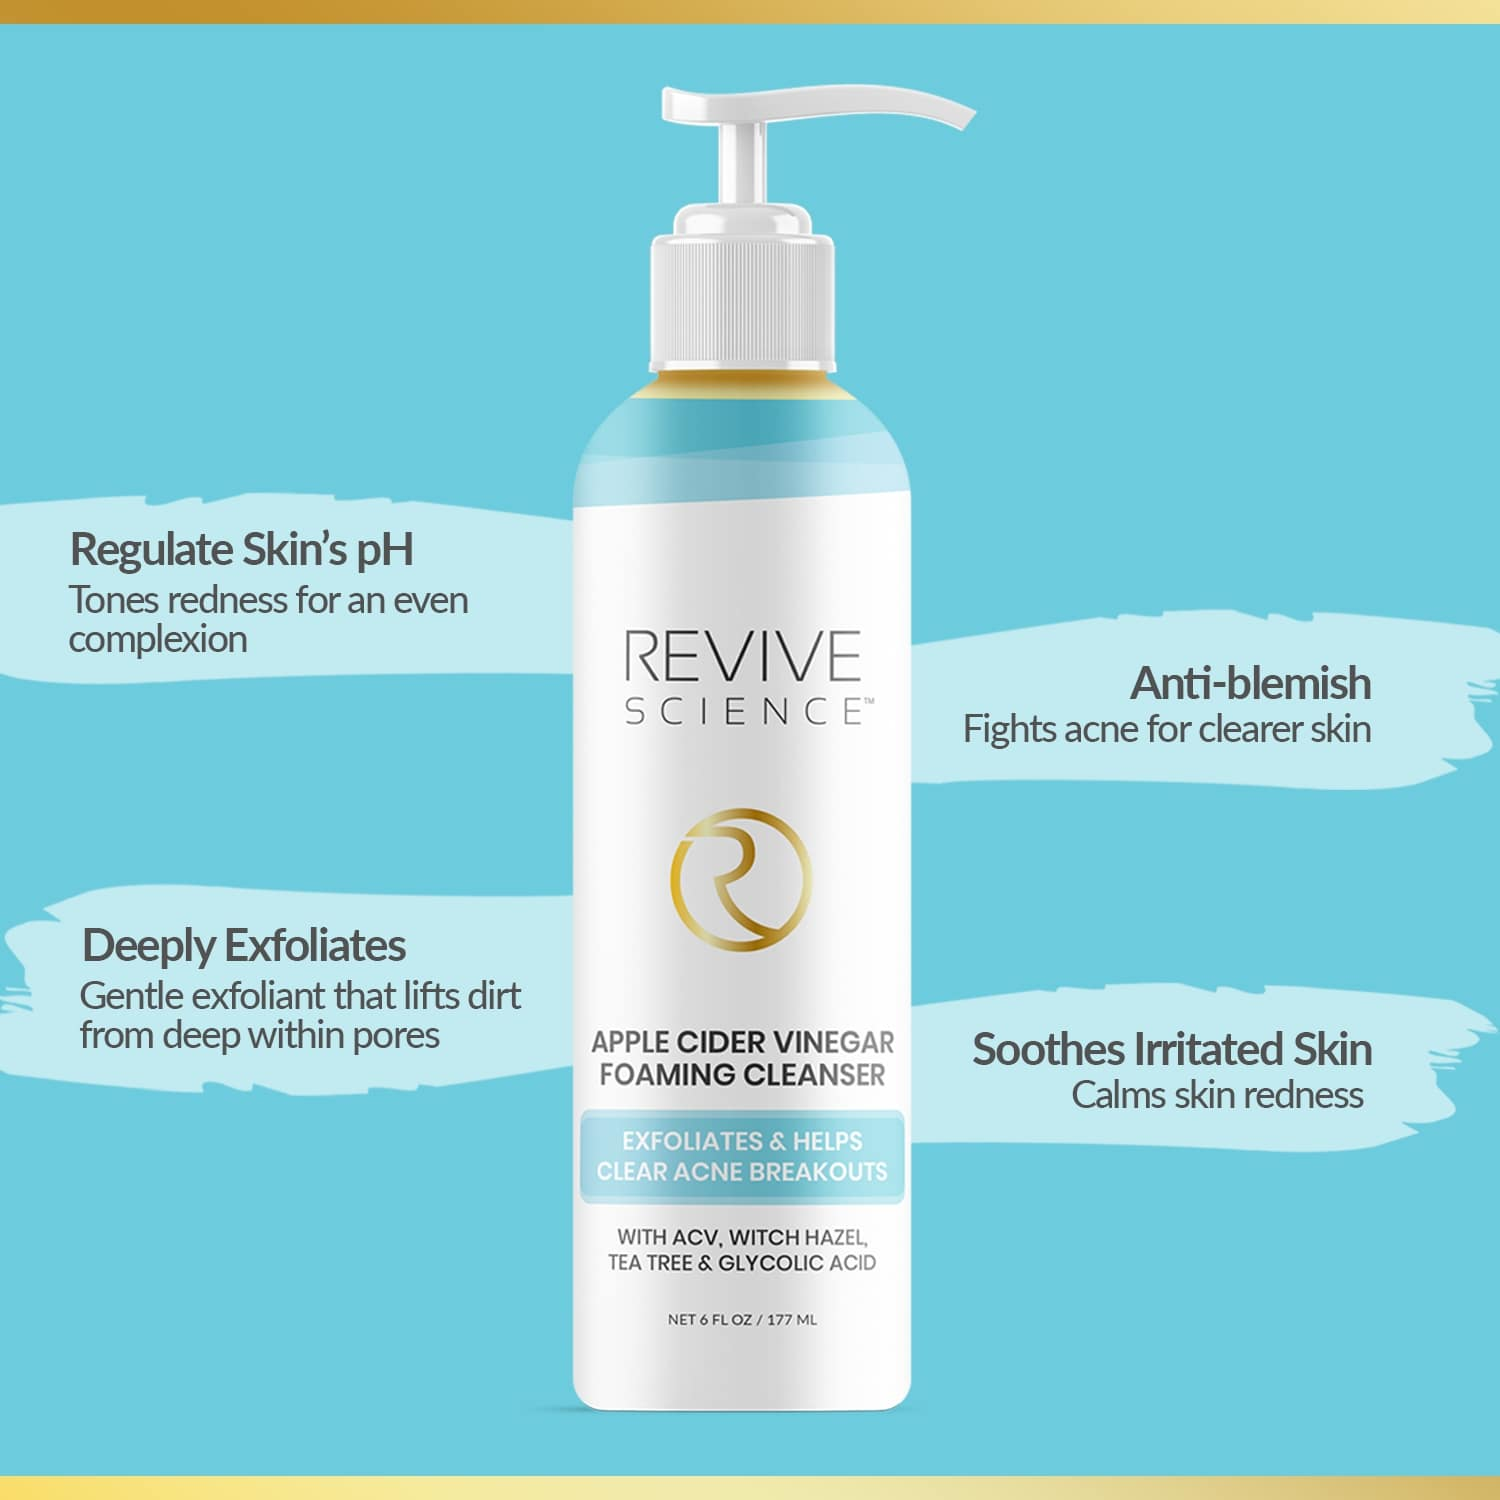 revive science apple cider vinegar face wash